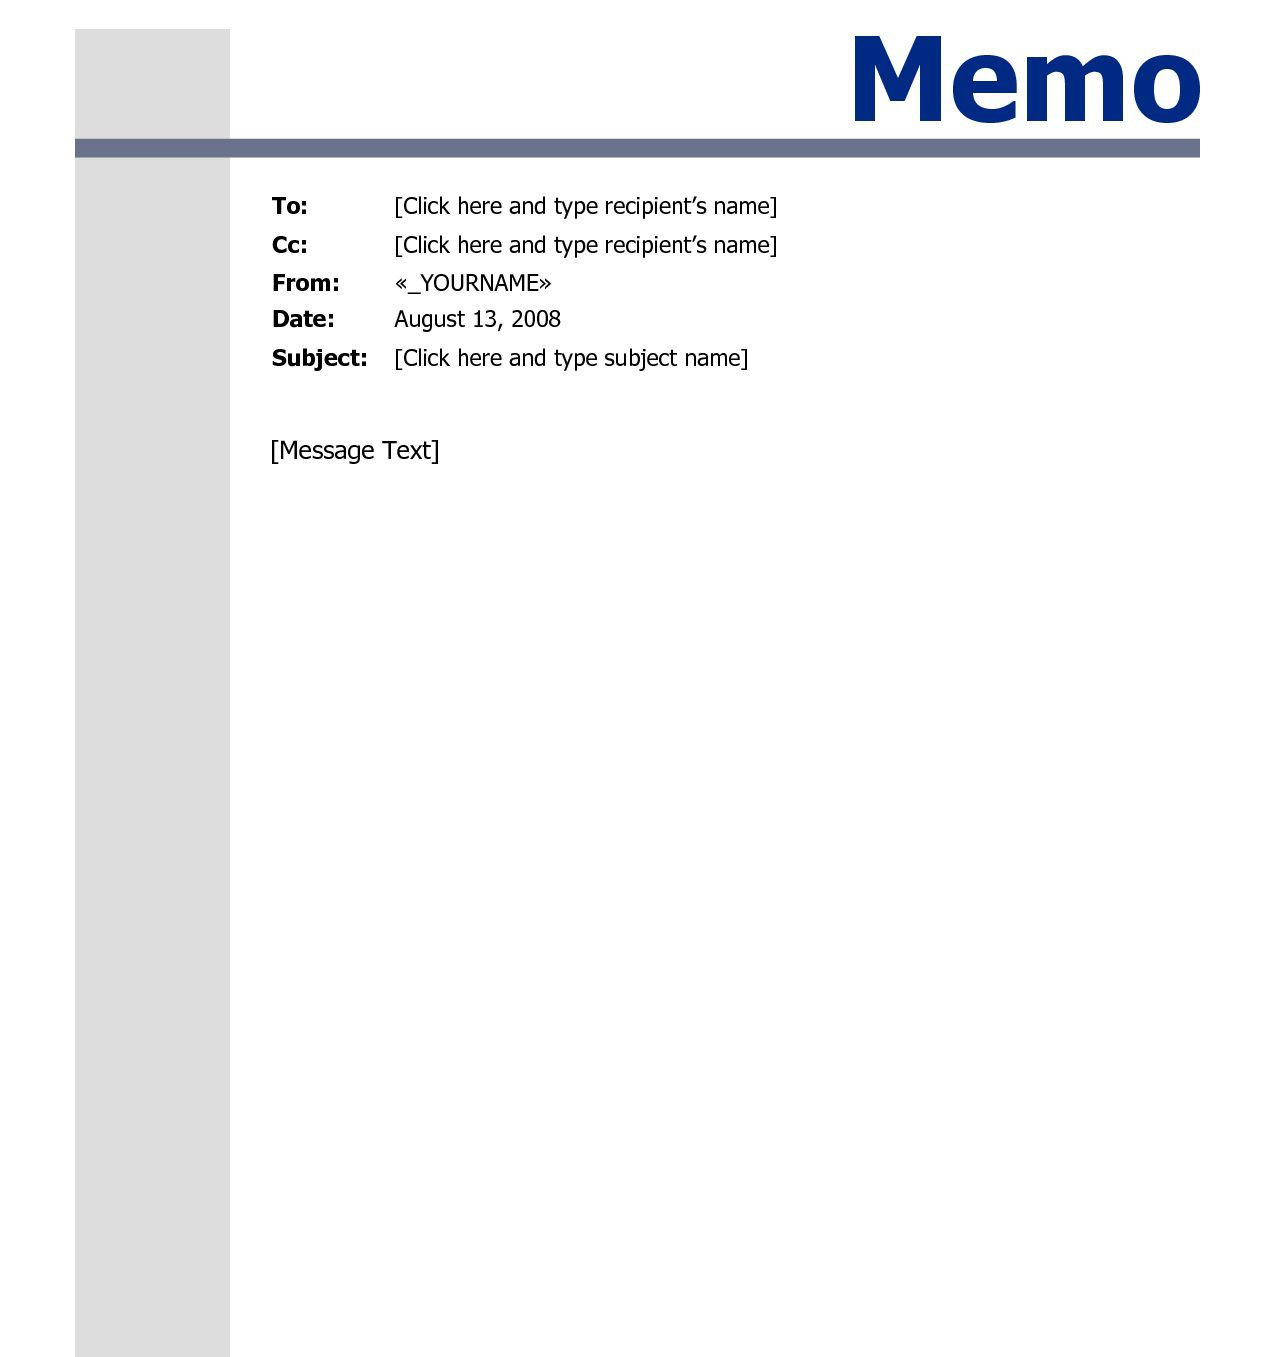 009 Top Memo Template For Word Highest Quality  Free Cash Sample 2013Full